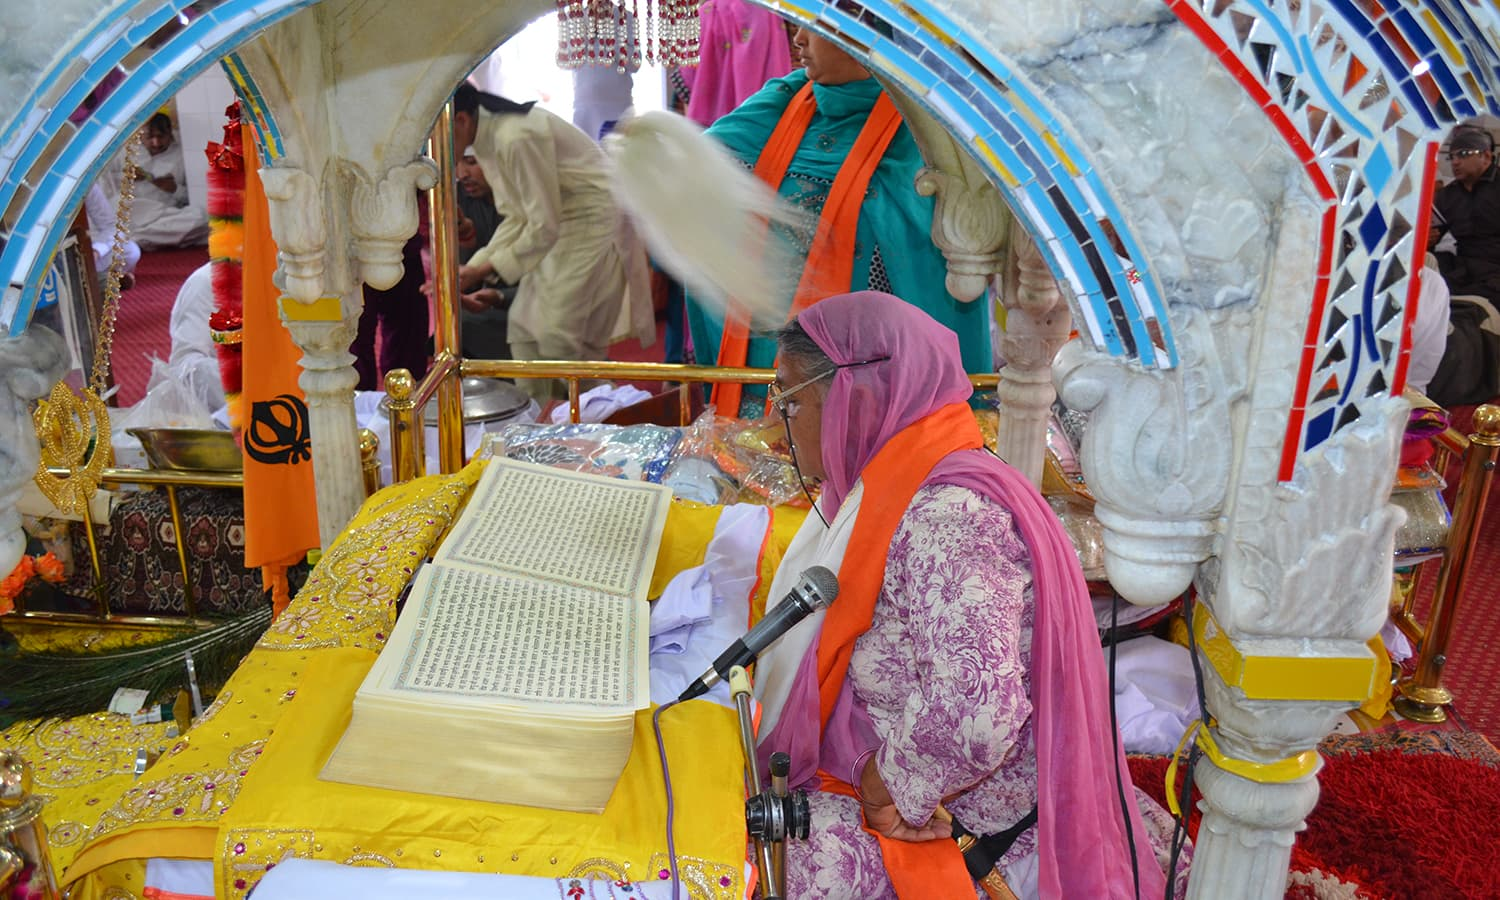 A woman reads 'Guru Granth Sahib', the holy book of the Sikh religion.